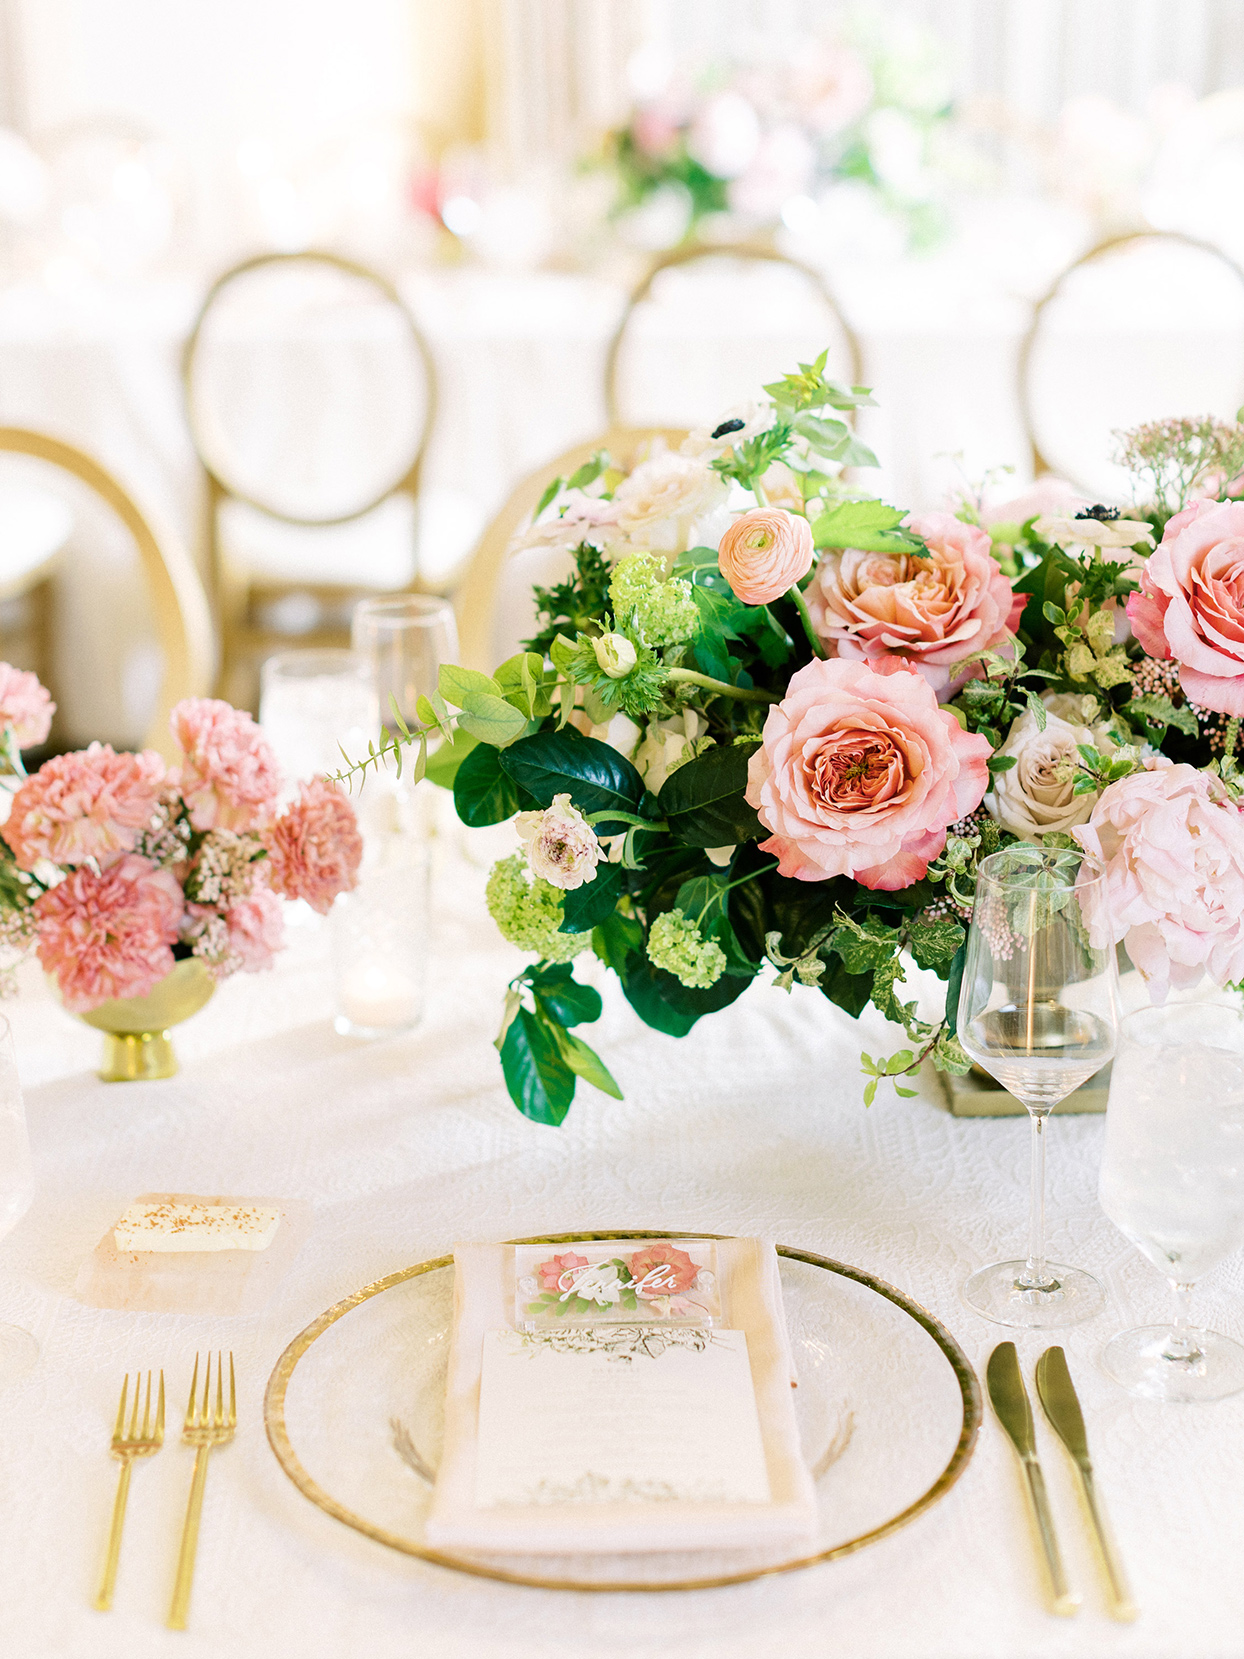 elegant reception place setting with golden accents and pink floral arrangement